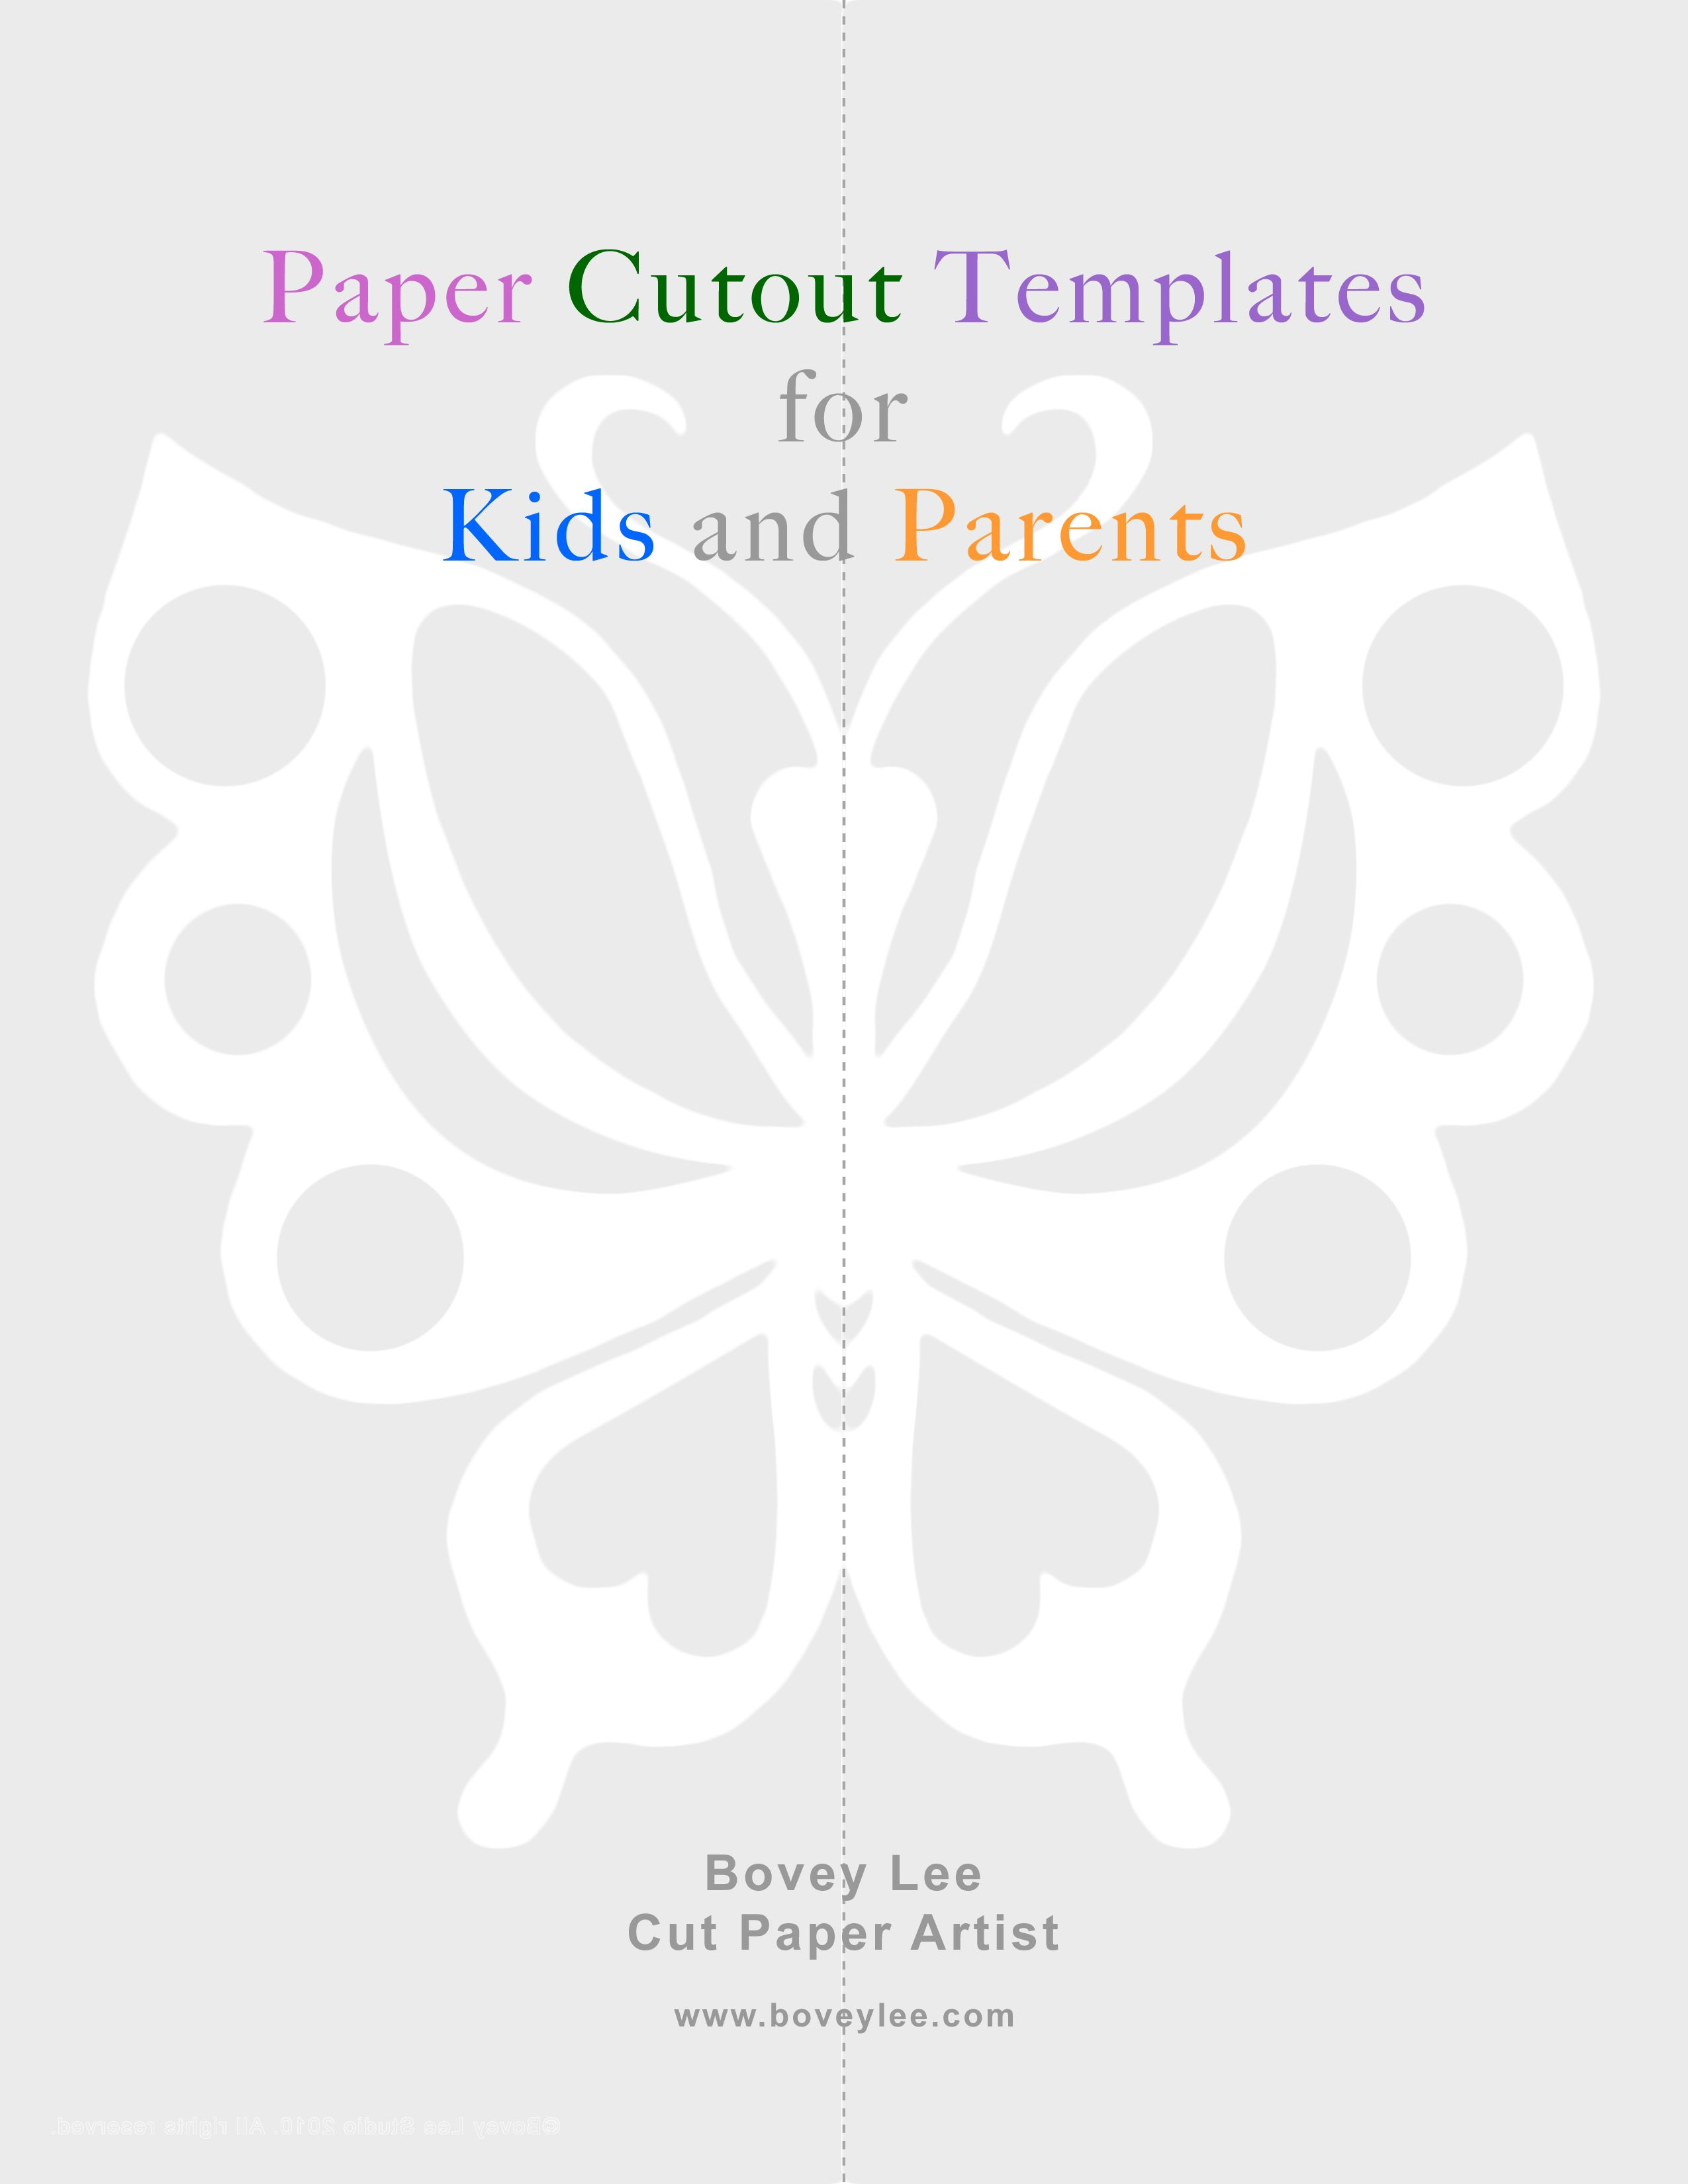 photograph relating to Paper Cutout Templates referred to as Totally free paper cutout templates for little ones and mom and dad Artwork